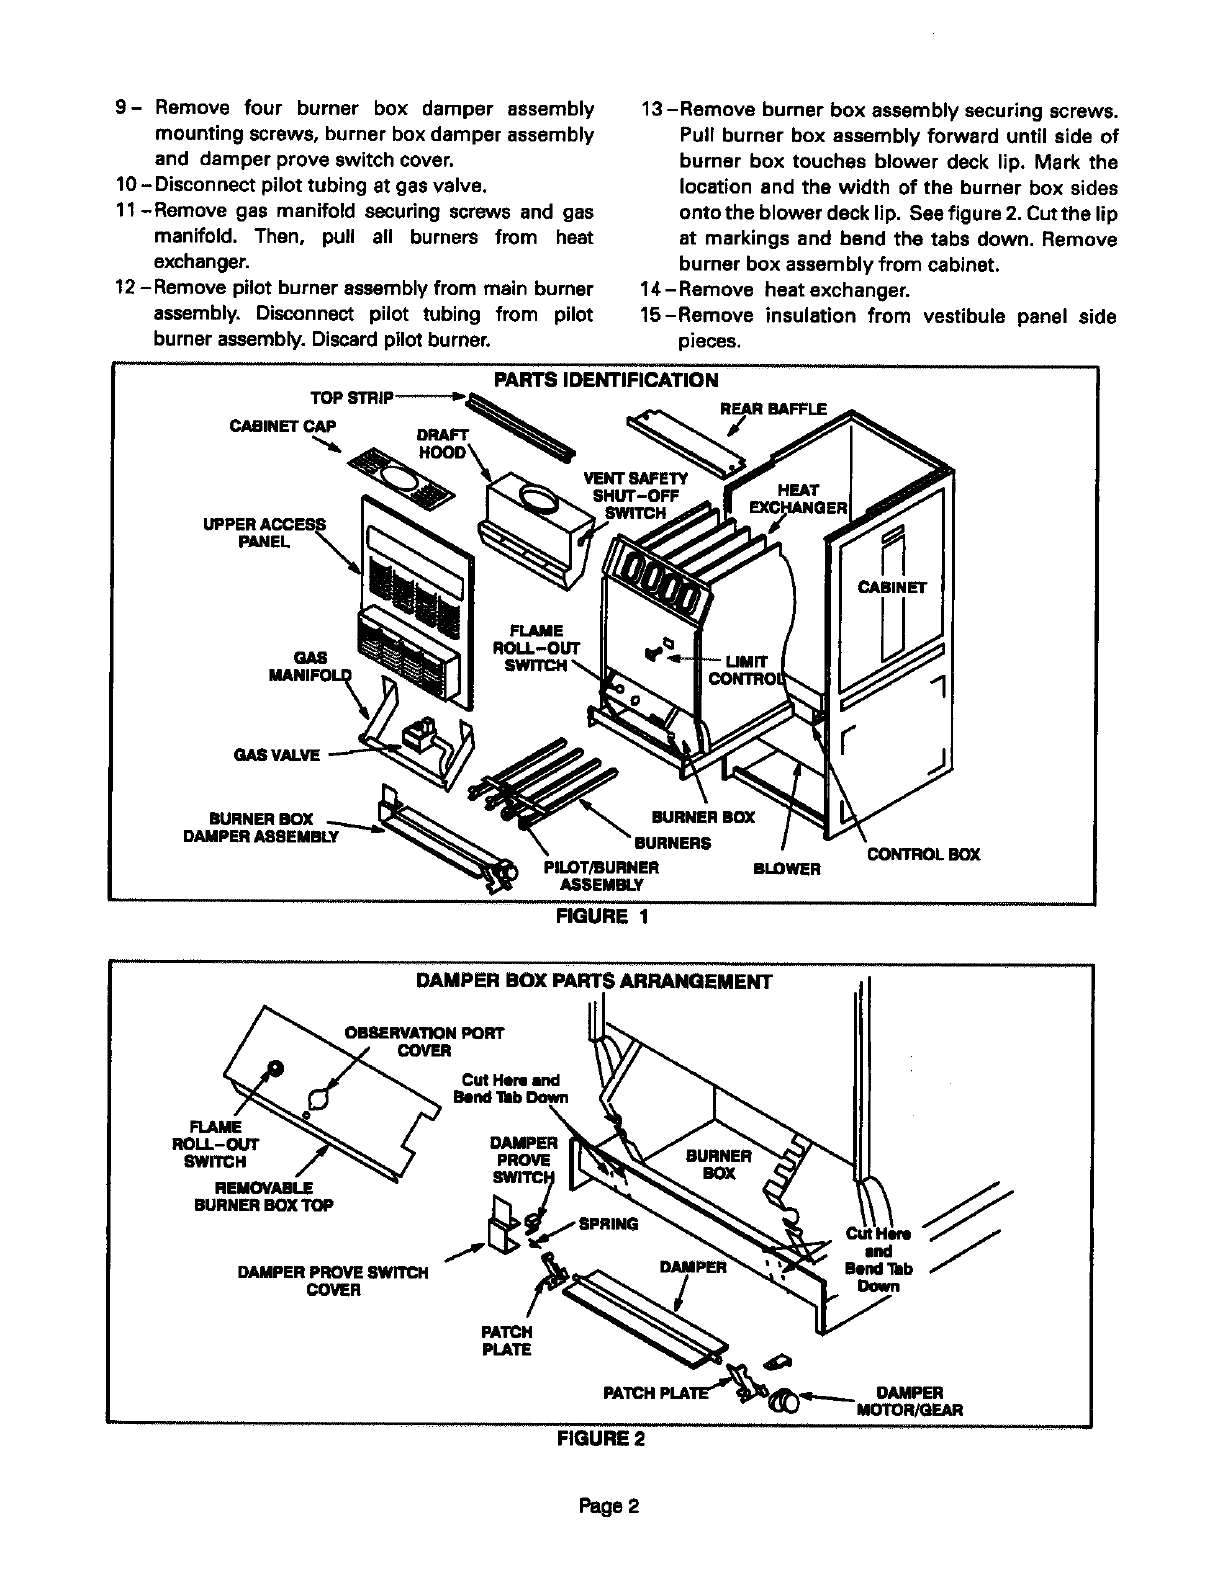 LENNOX Furnace/Heater, Gas Manual L0806816UserManual.wiki